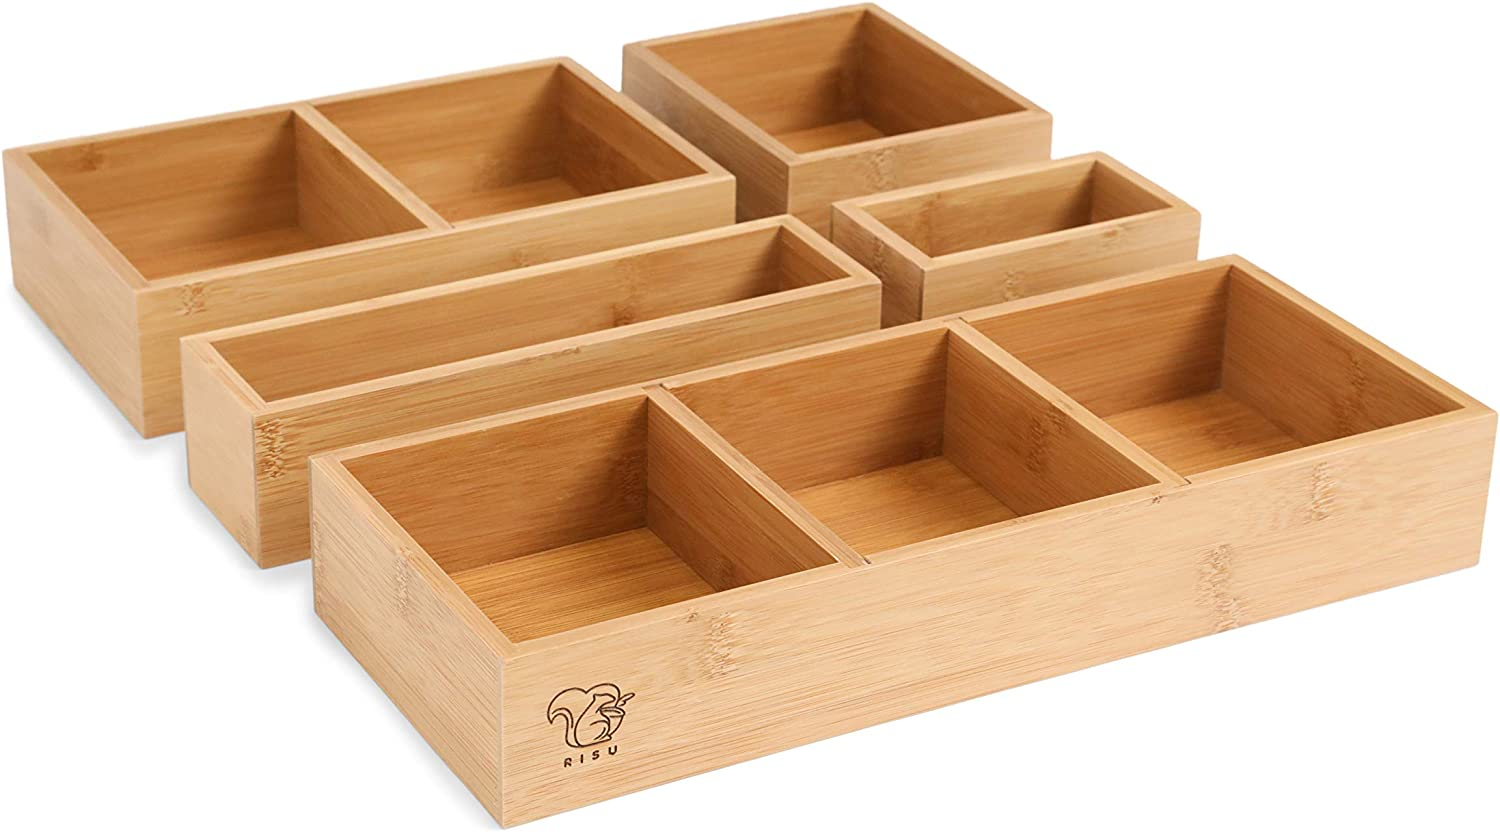 RISU Bamboo Drawer Organizer: Storage Boxes for Tidying Up Junk - Multi-Sized Set of 5, Sturdy and Sustainable, Perfect Trays for Office Supplies, Make-Up Cosmetics and Kitchen Utensils